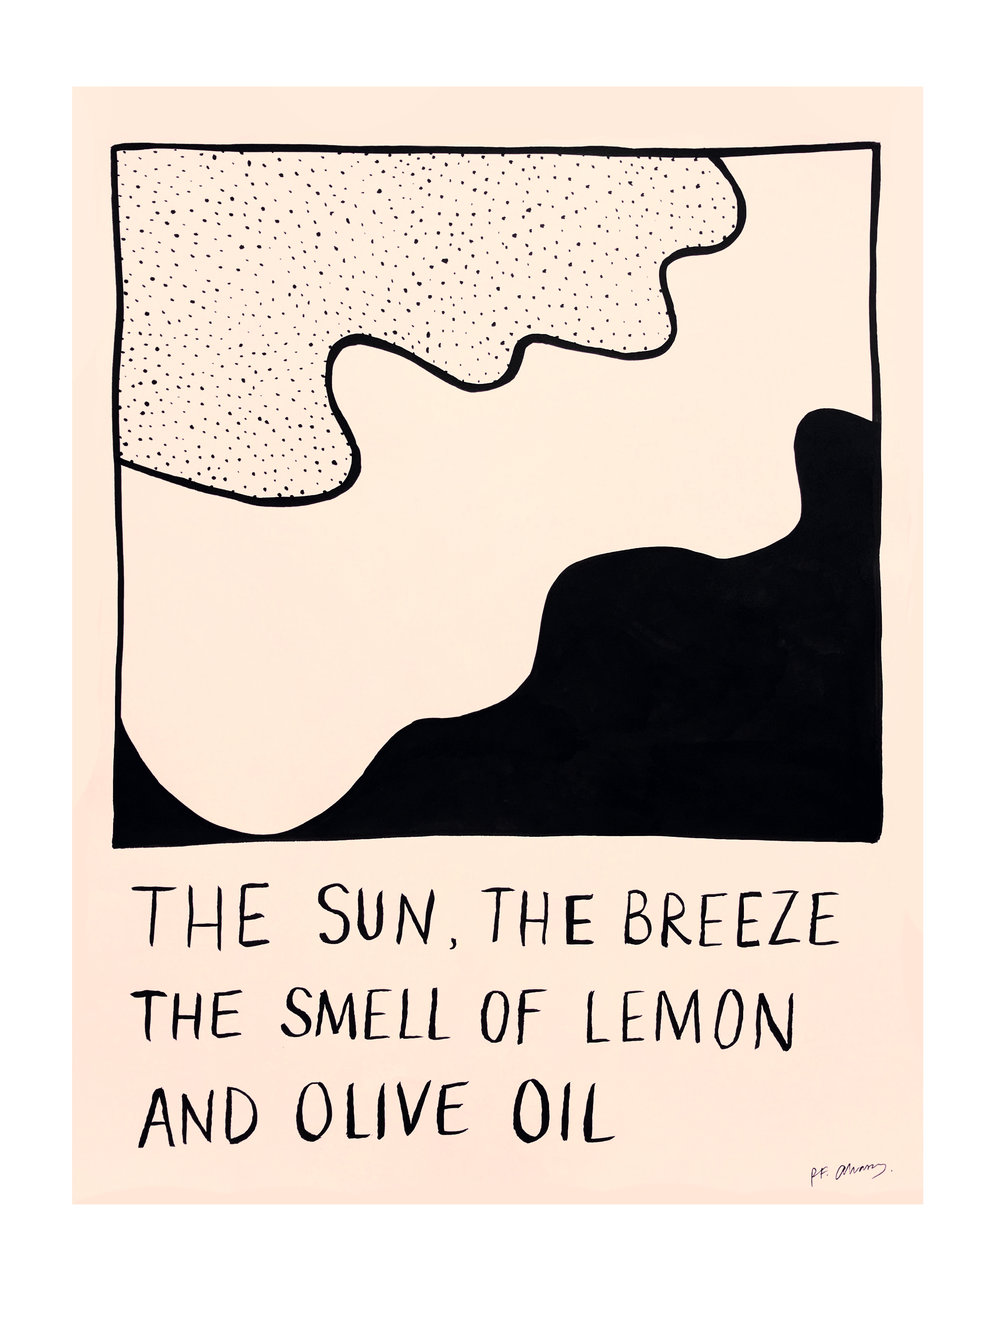 the sun, the breeze, the smell of lemon and olive oil - Brushed ink on nude lithography paper. 30.5 × 24.5